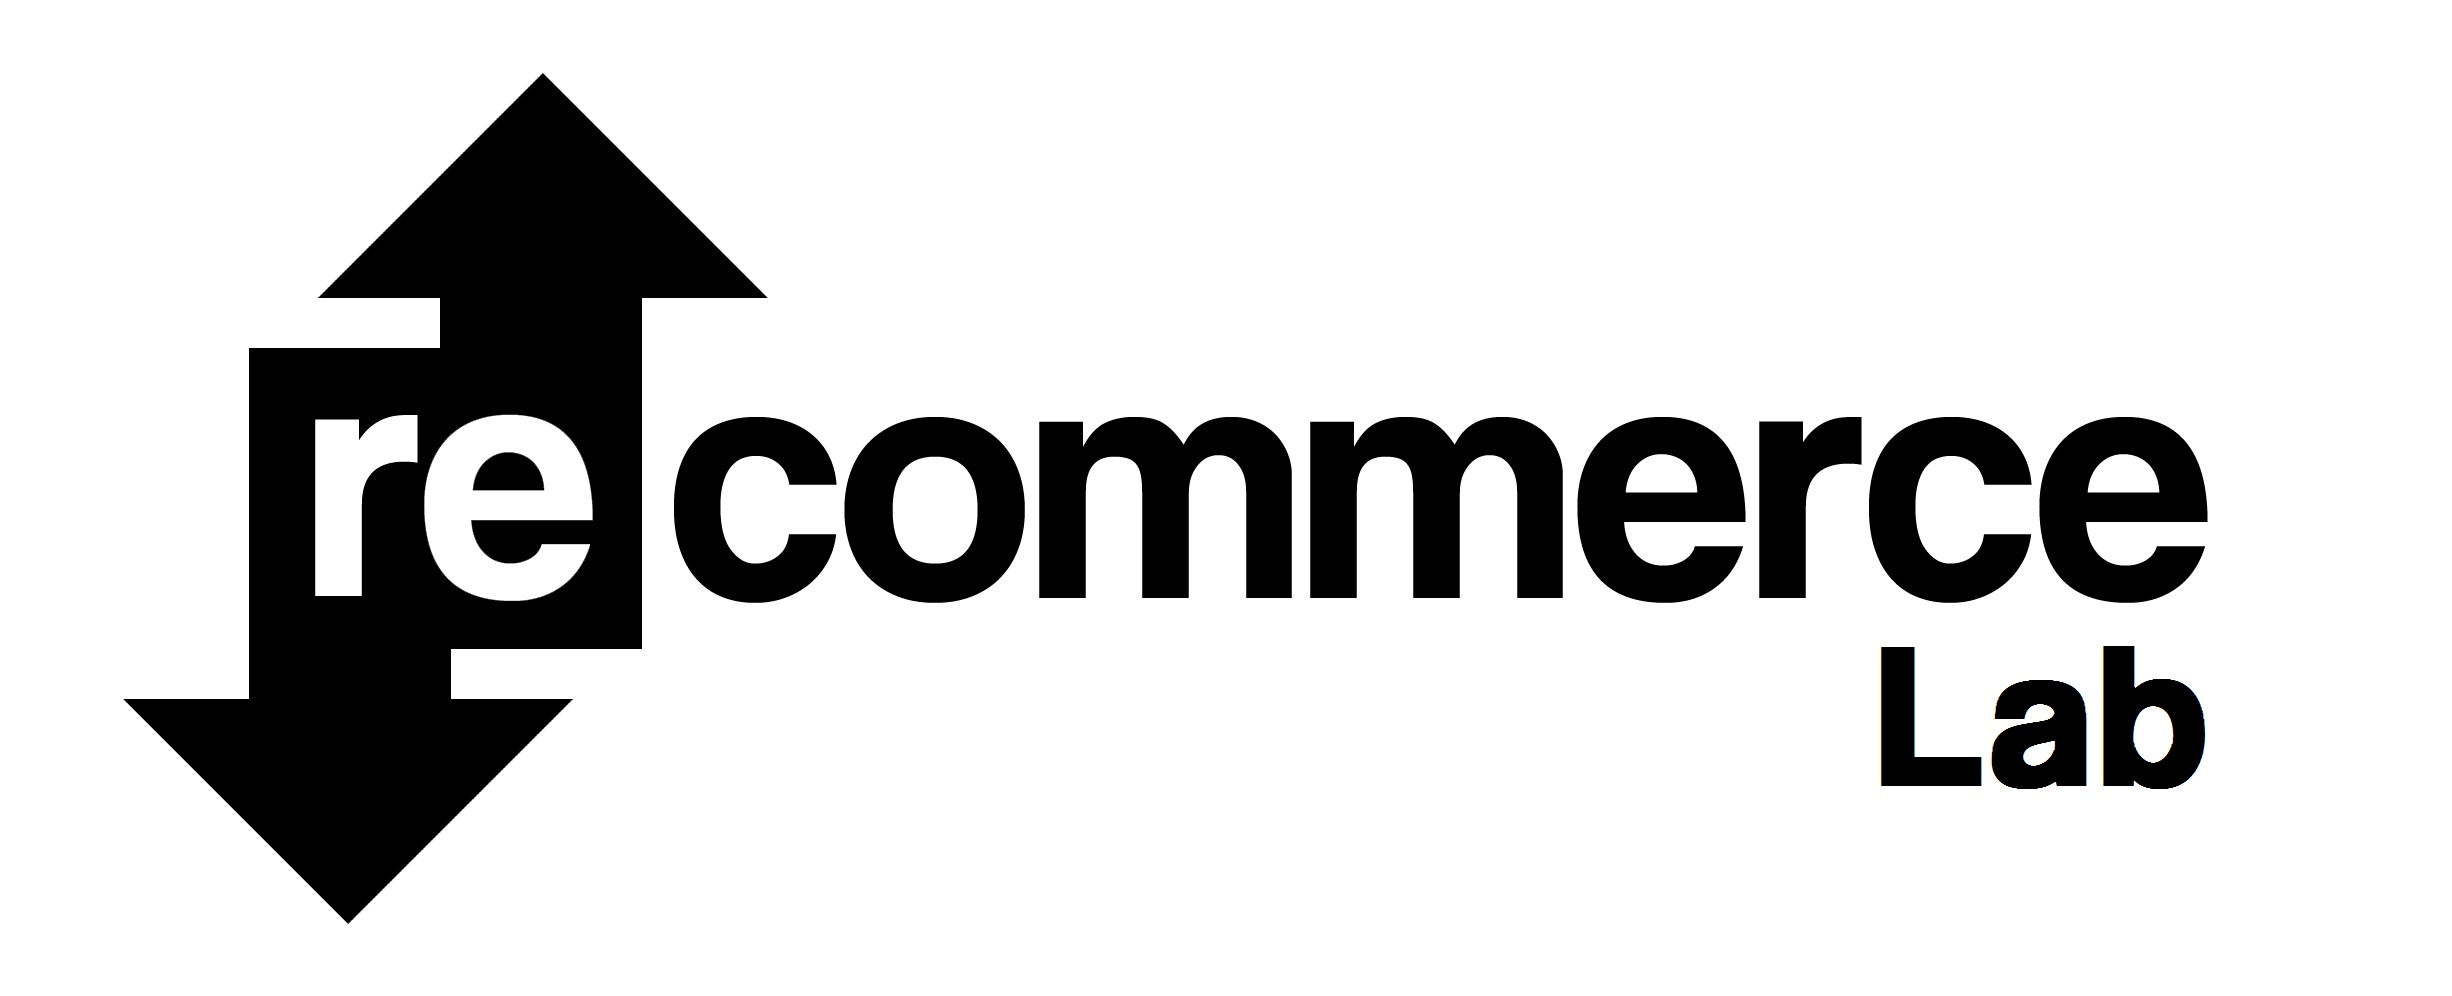 Recommerce Lab